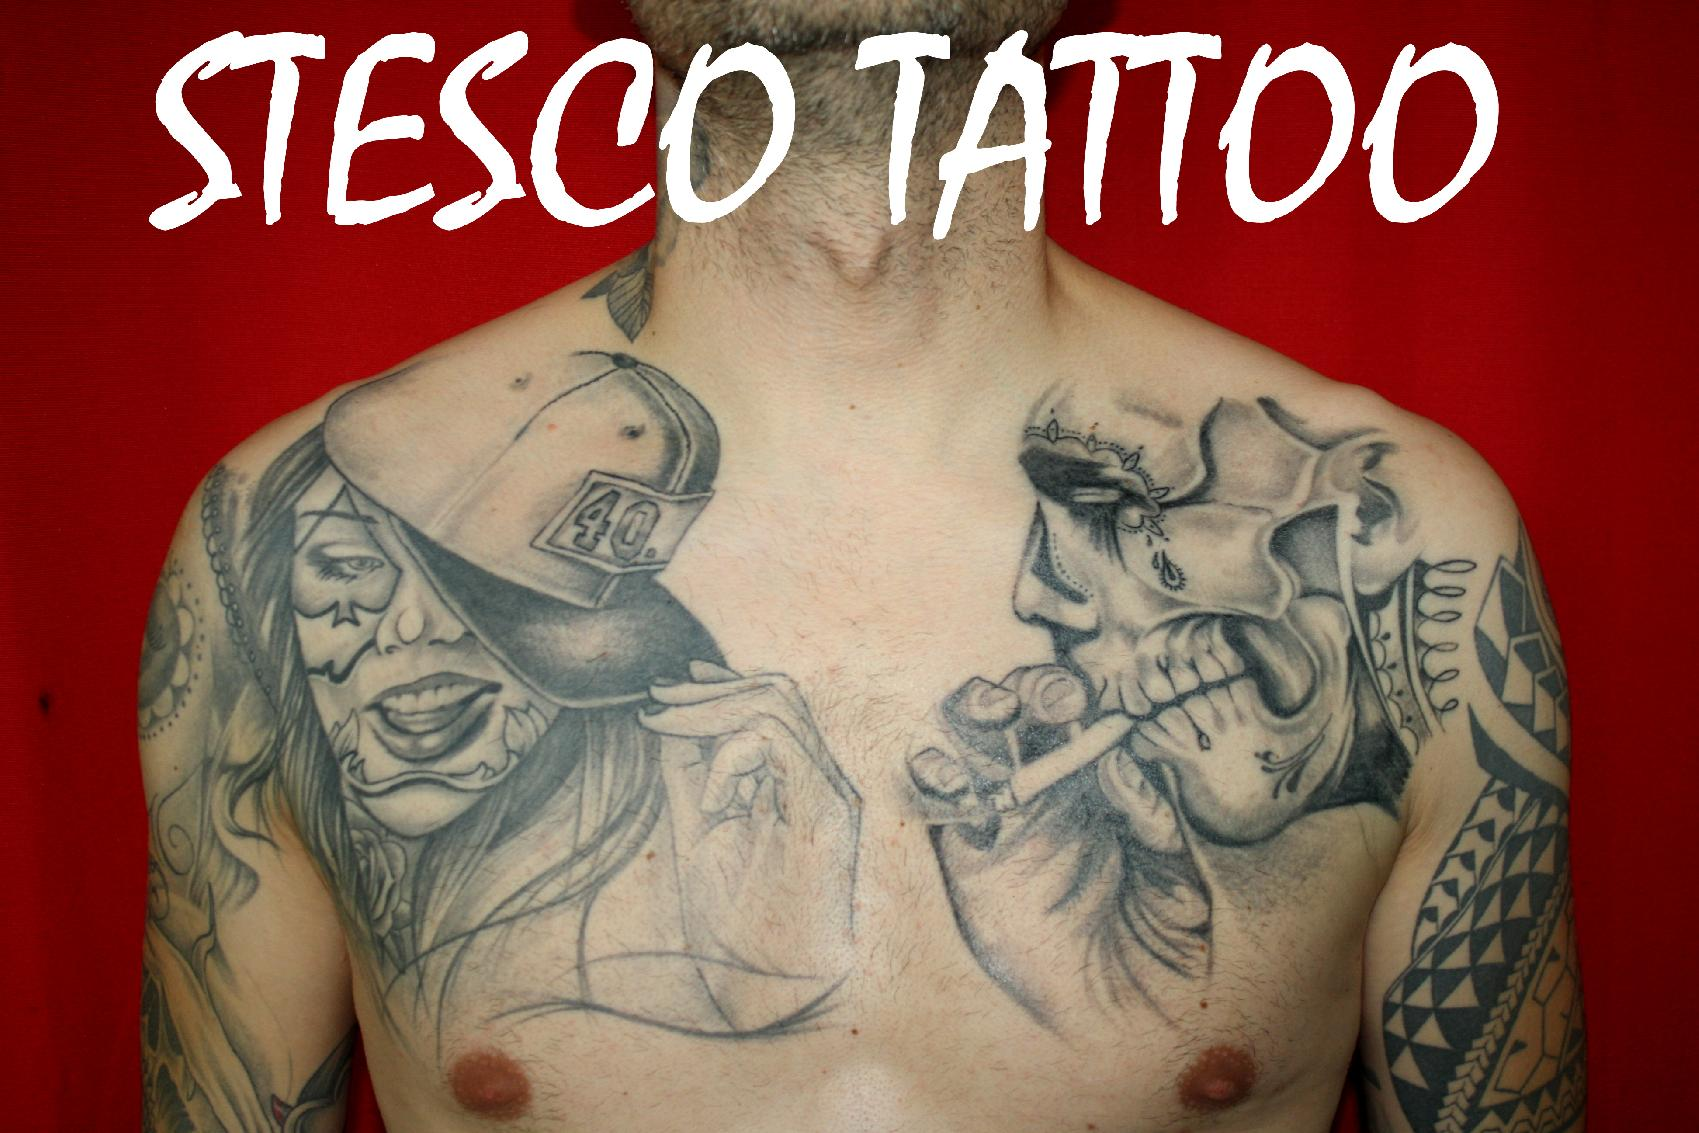 stesco tattoo